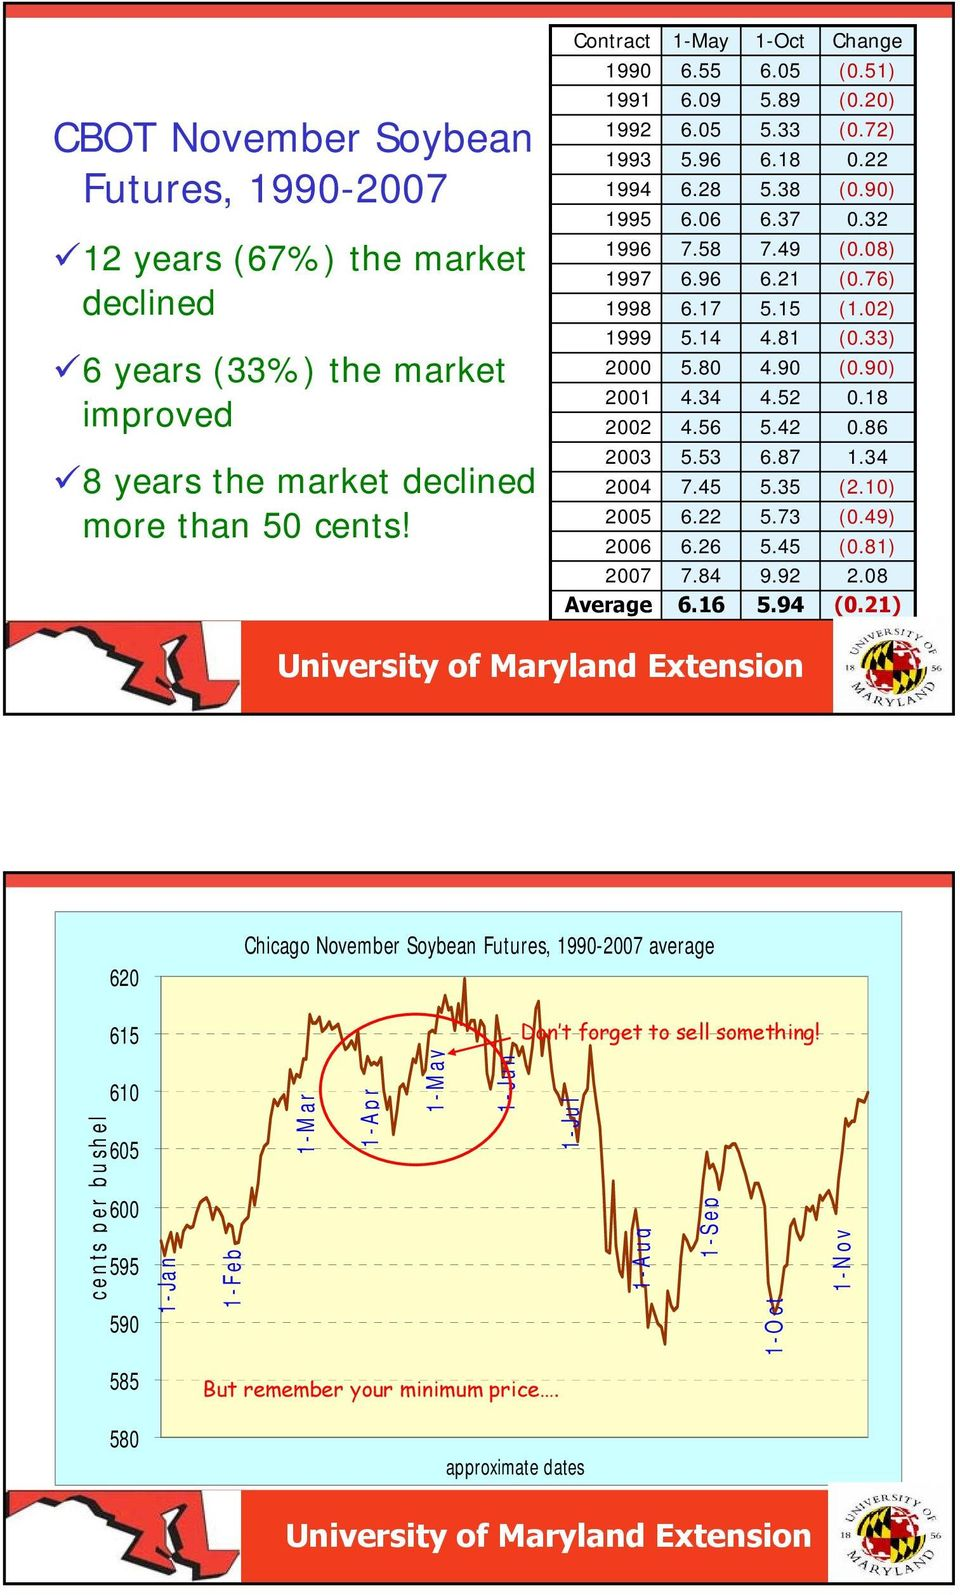 42 (0.33) (0.90) 0.18 0.86 8 years the market declined more than 50 cents! 2003 2004 2005 2006 5.53 7.45 6.22 6.26 6.87 5.35 5.73 5.45 1.34 (2.10) (0.49) (0.81) 2007 7.84 9.92 2.08 Average 6.16 5.